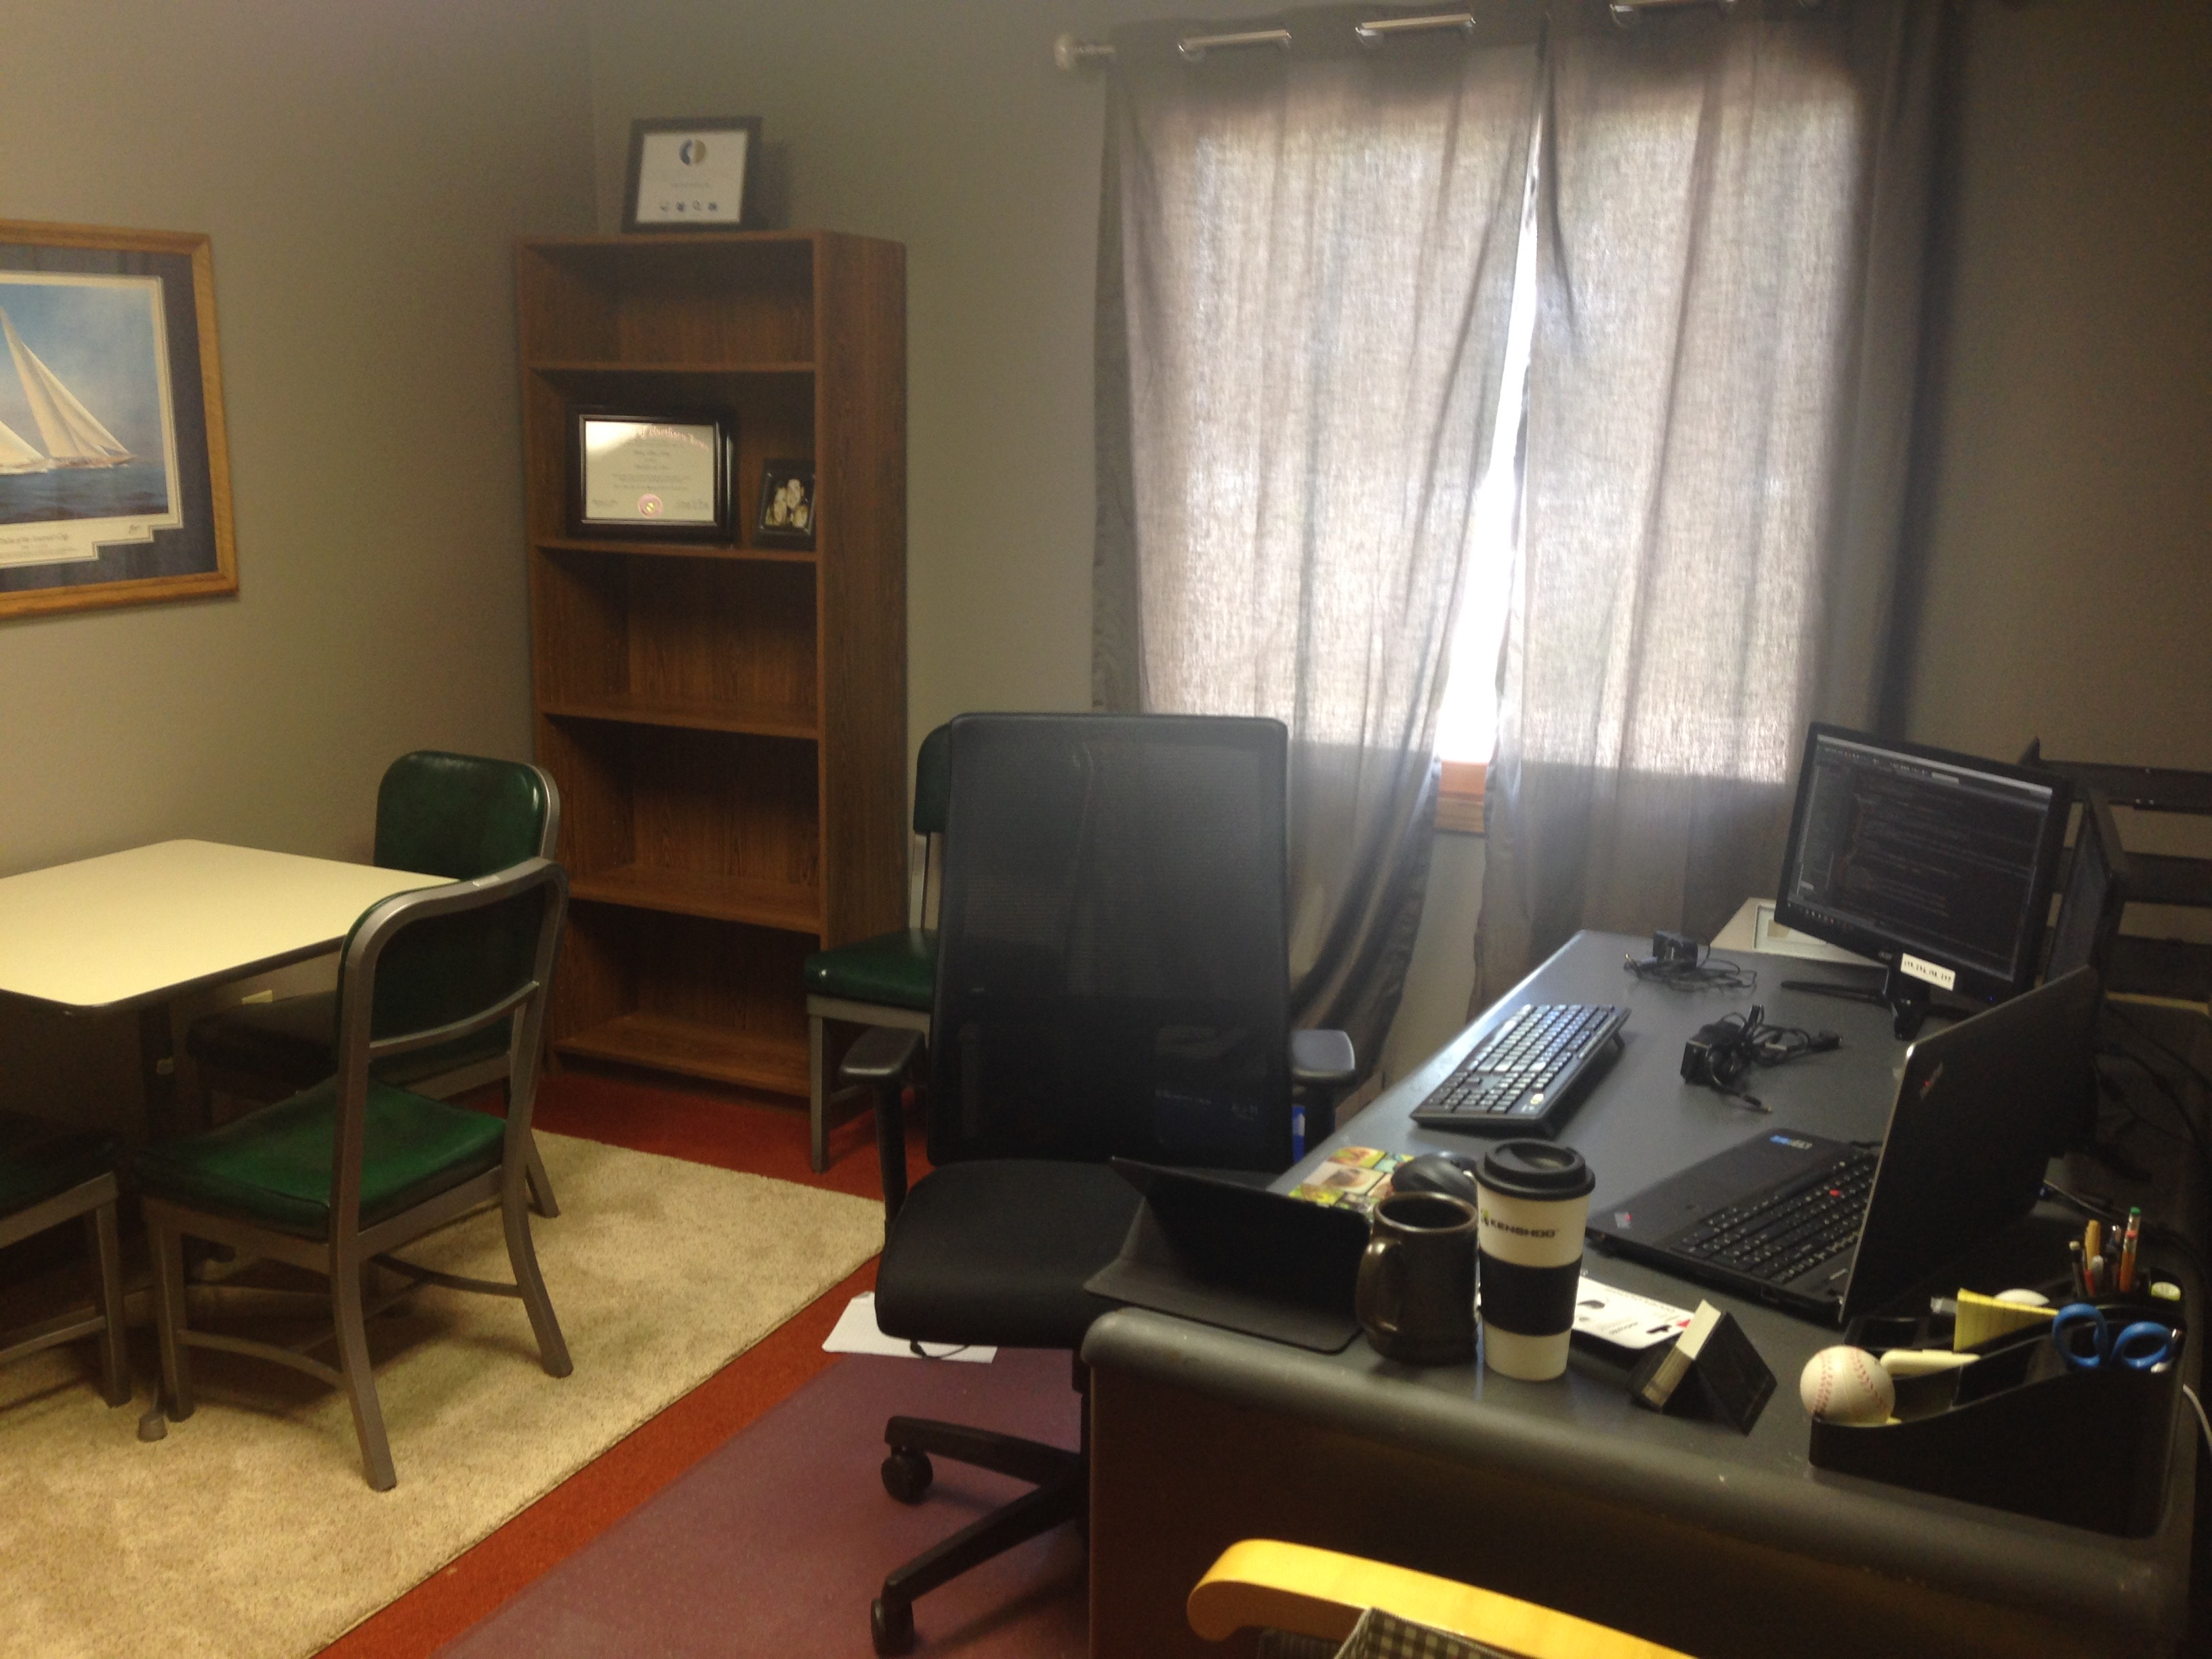 Coloff Digital's Manager, Weston Lohry, is very excited about his new office.